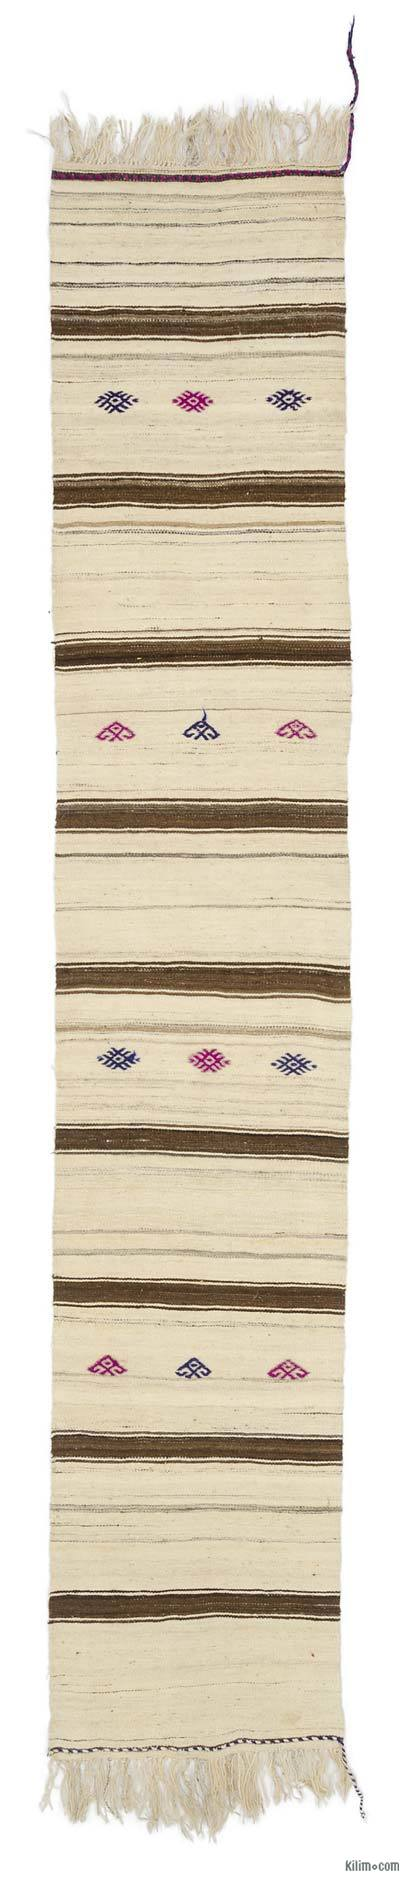 "Vintage Turkish Kilim Runner - 2' 3"" x 12' 1"" (27 in. x 145 in.)"